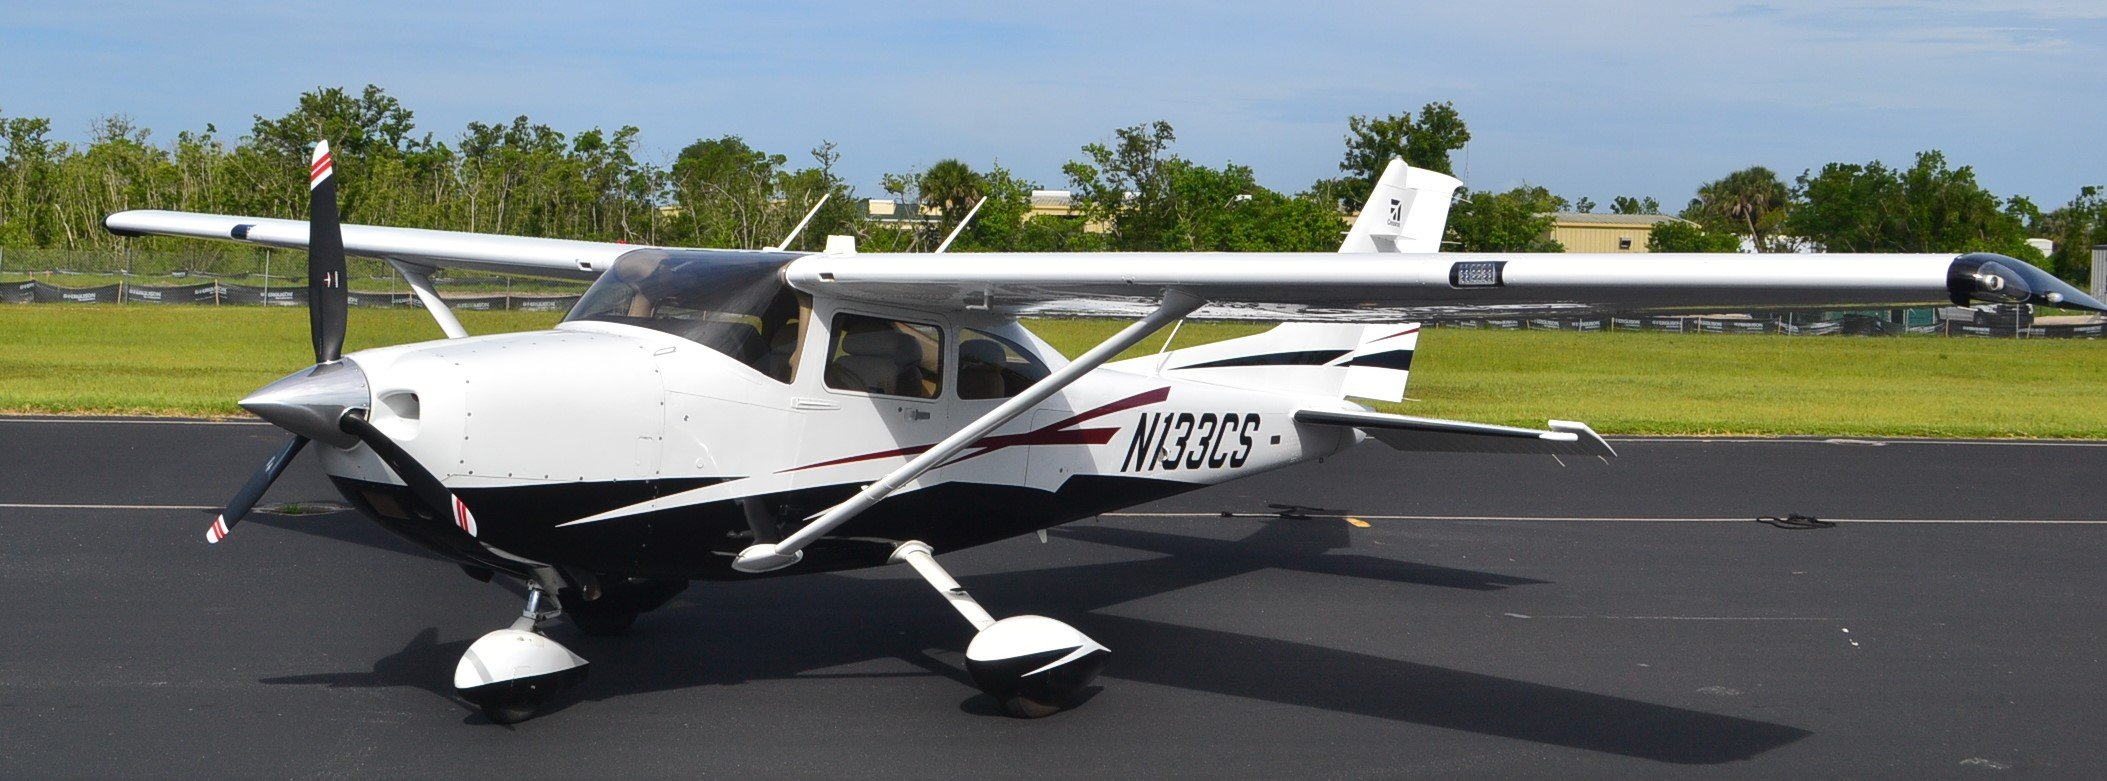 Upward Aircraft Sales | N60257 1969 Cessna 150J - Upward Aircraft Sales